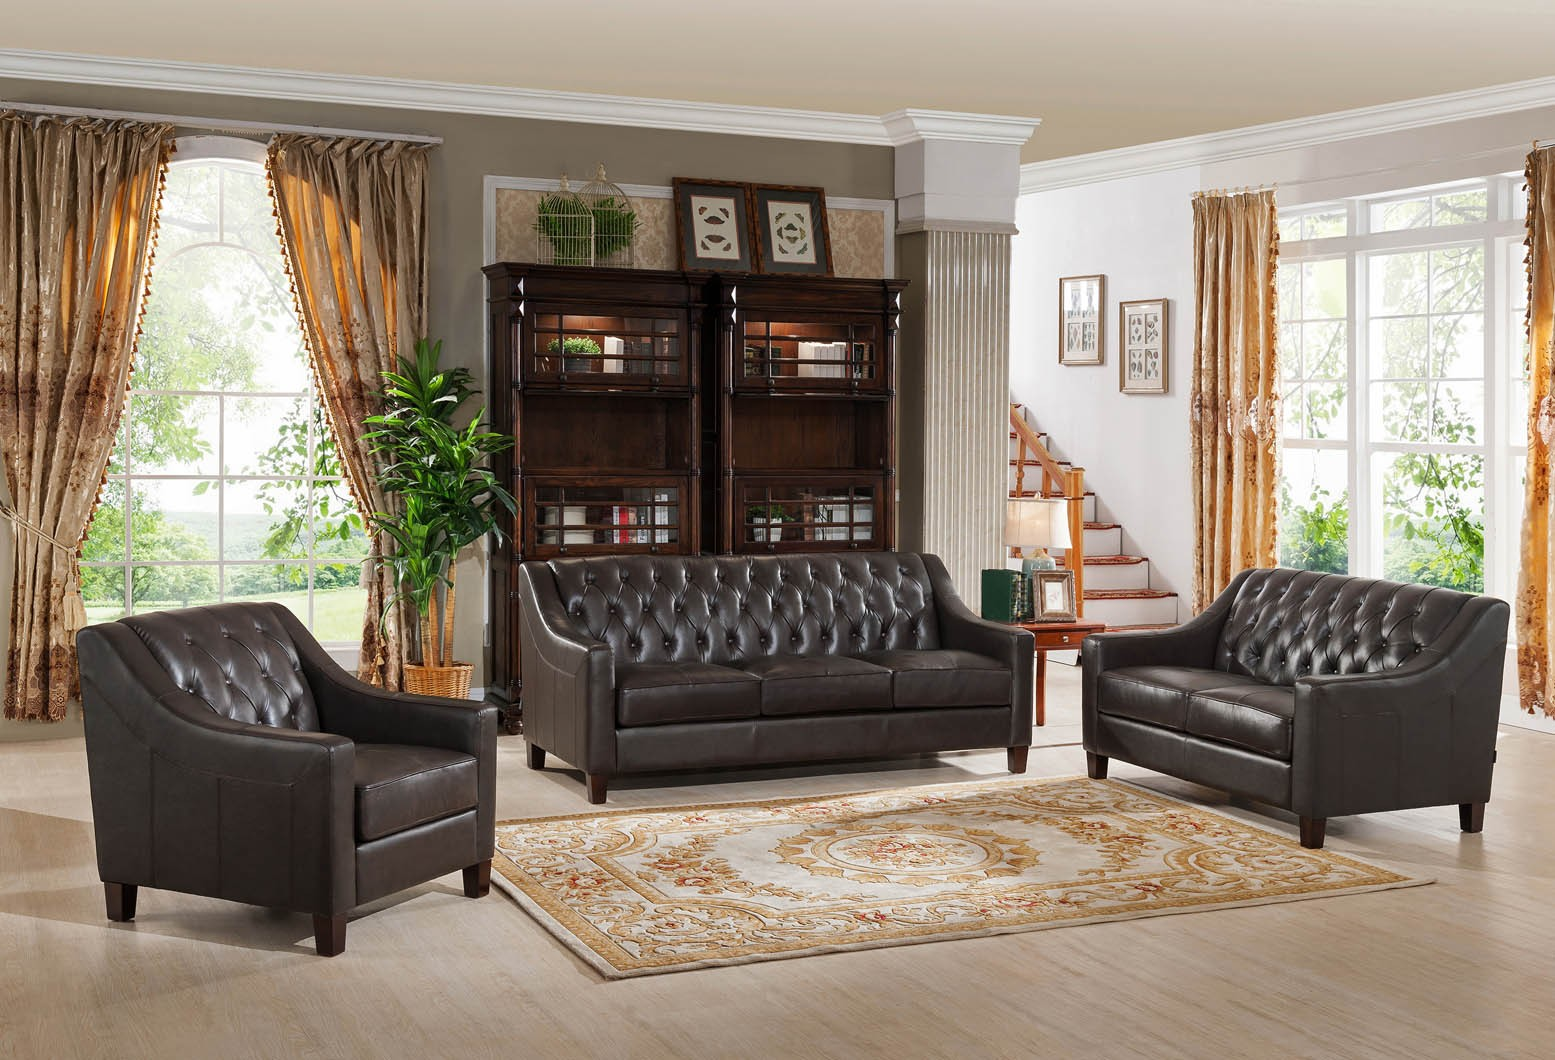 Kaitlyn brown 3 piece leather living room set from amax for Three piece leather living room set